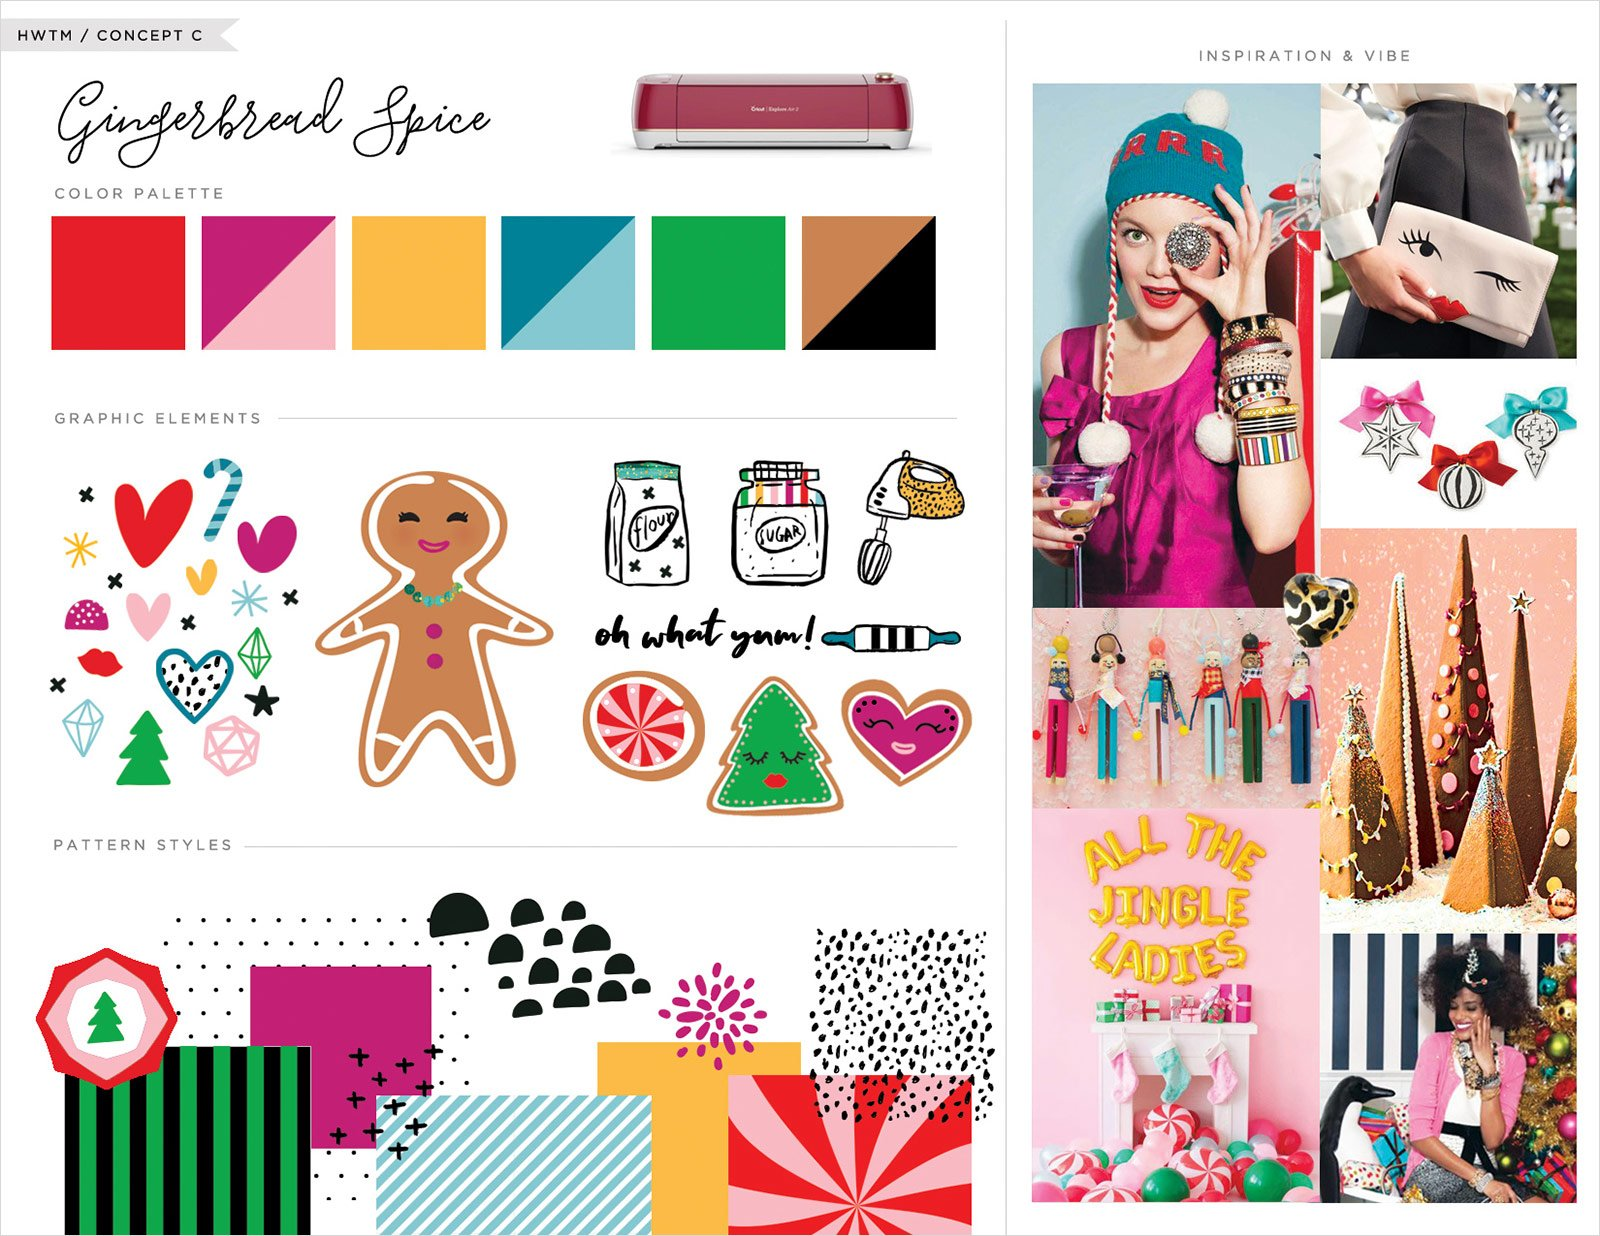 Inspiration Board - Gingerbread Spice Theme